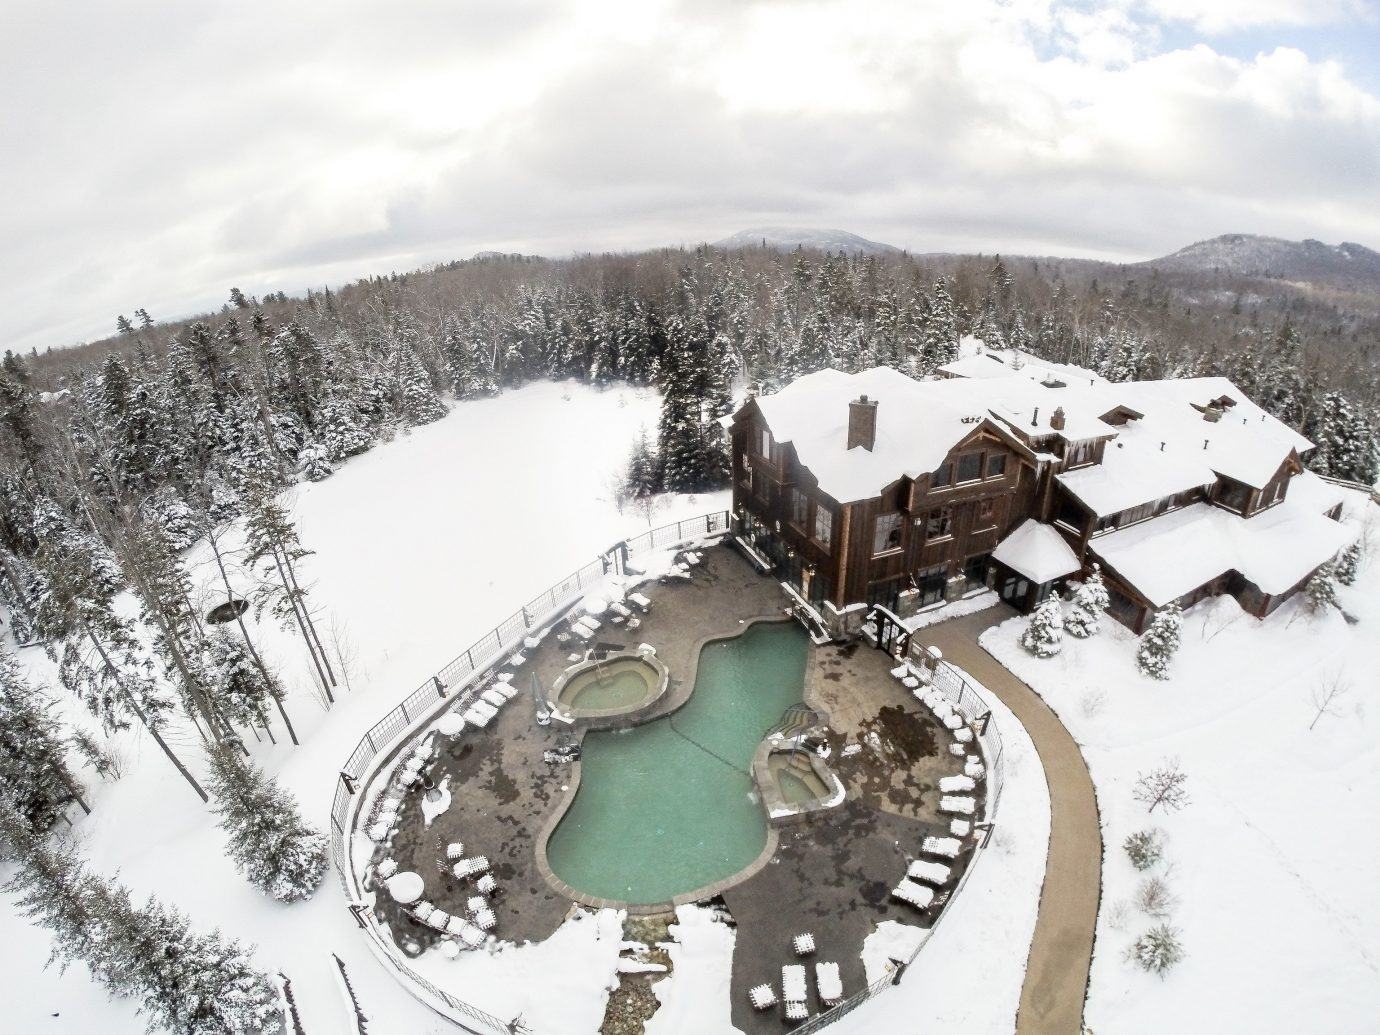 Health + Wellness Spa Retreats Trip Ideas outdoor snow Winter weather geological phenomenon Resort season piste aerial photography winter sport mountain range ski equipment chain